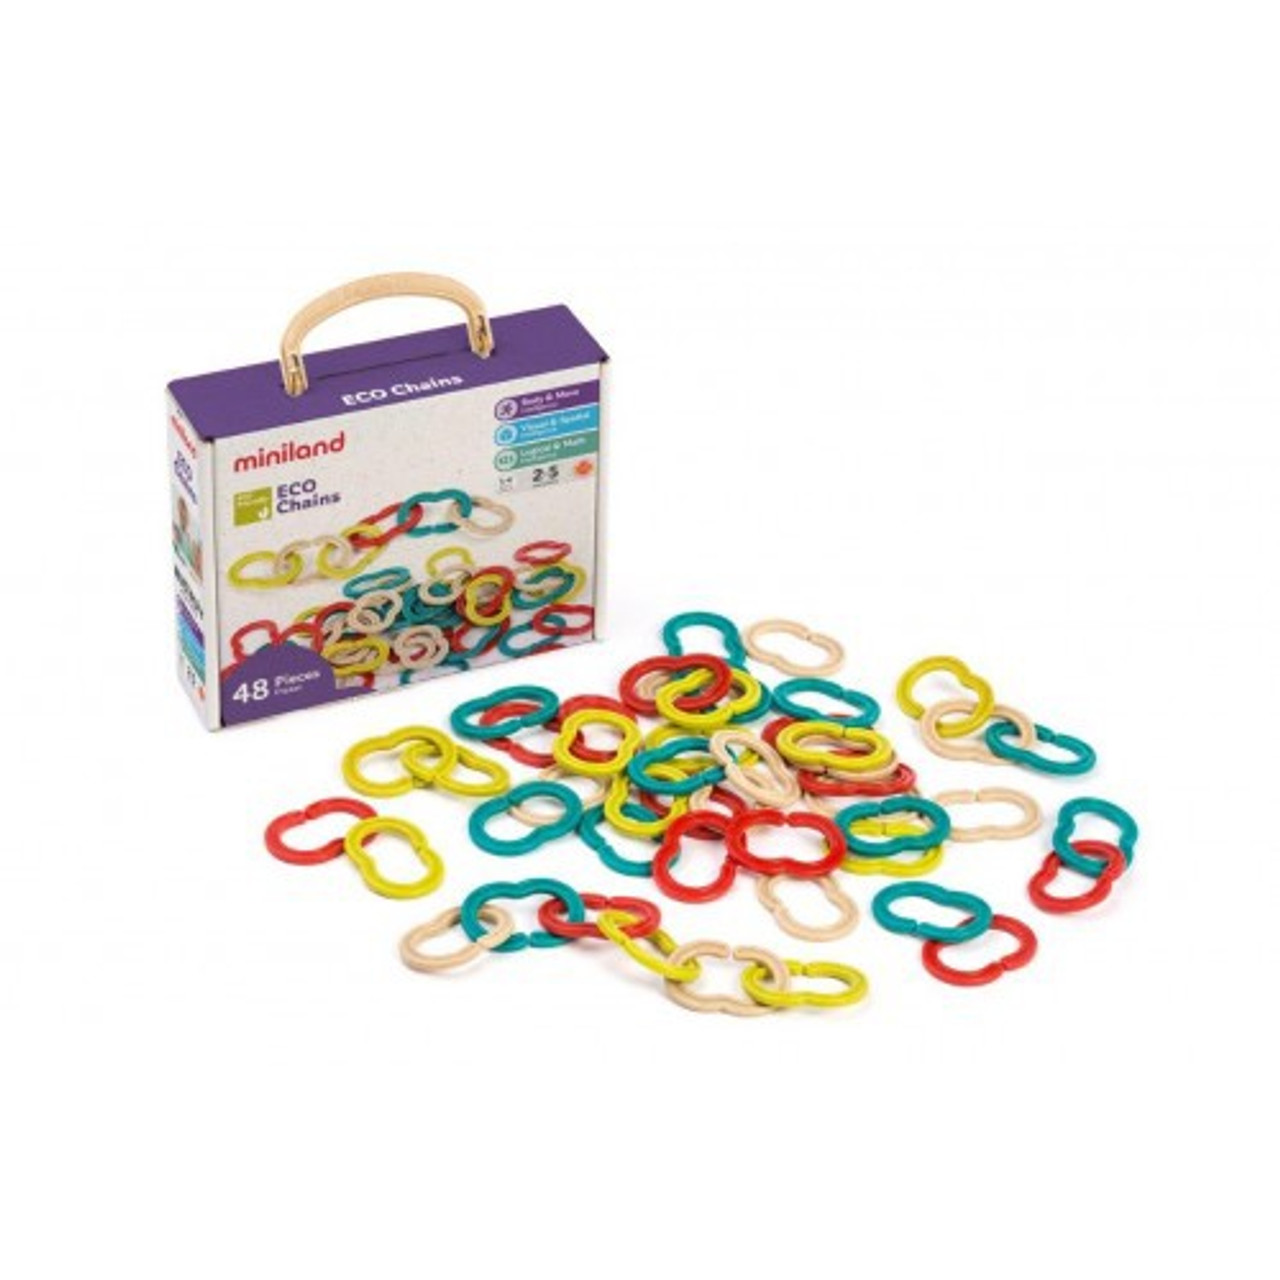 Miniland Aptitude Eco Activity Eco Chains 48pcs at Baby Barn Discounts Miniland aptitude eco activity eco chain set of coloured links allows chains to be created.